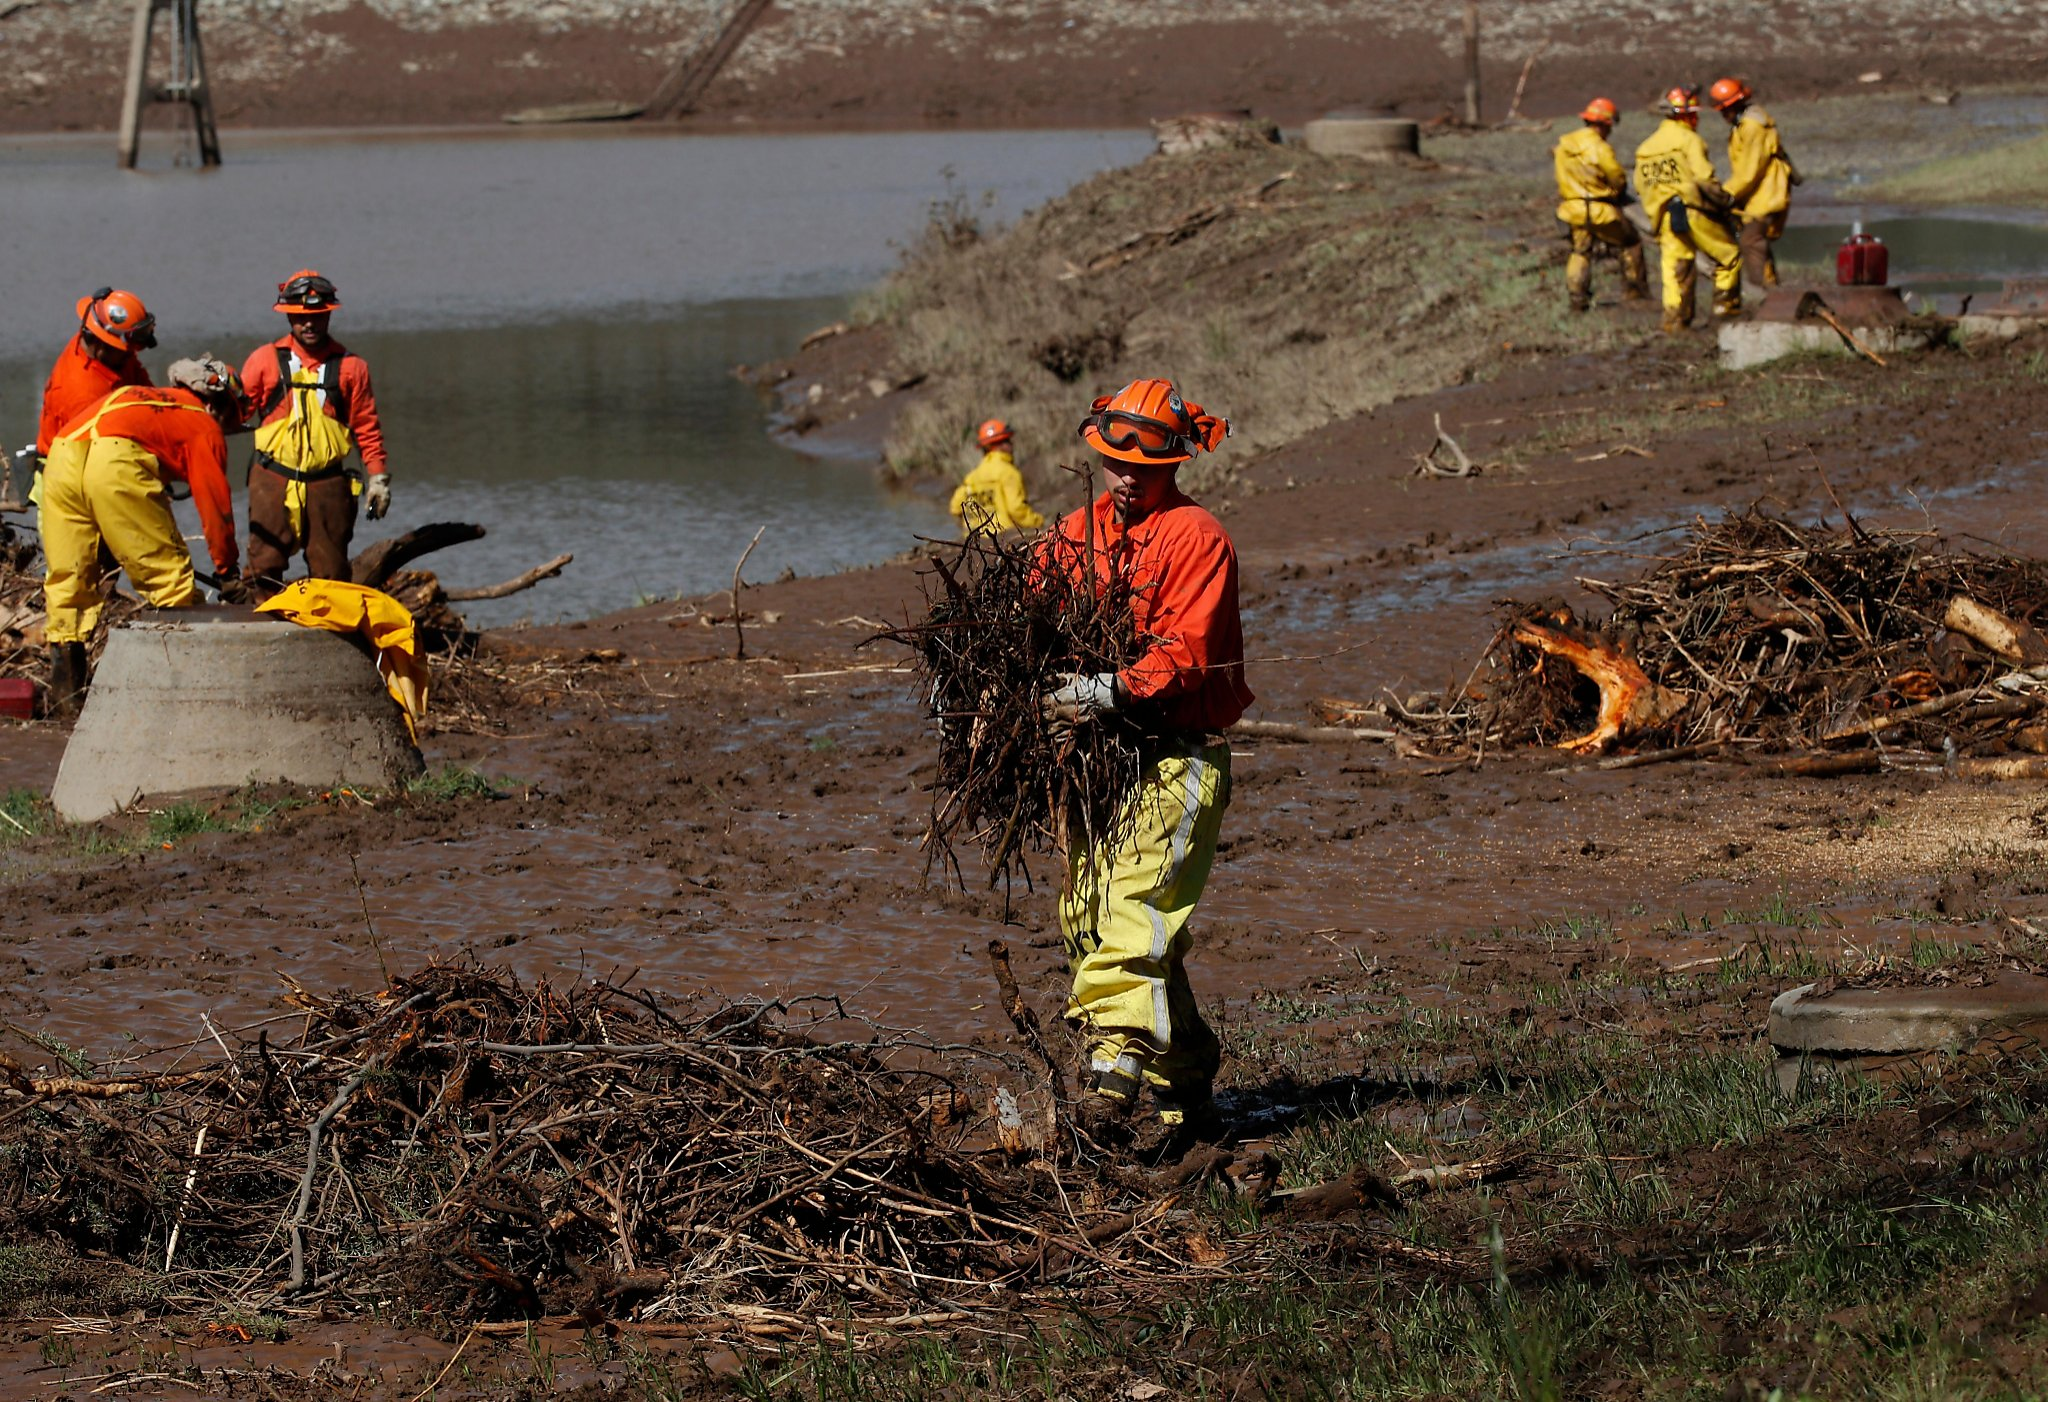 Evacuation orders lifted Saturday for residents near Moccasin Dam | San Francisco Gate